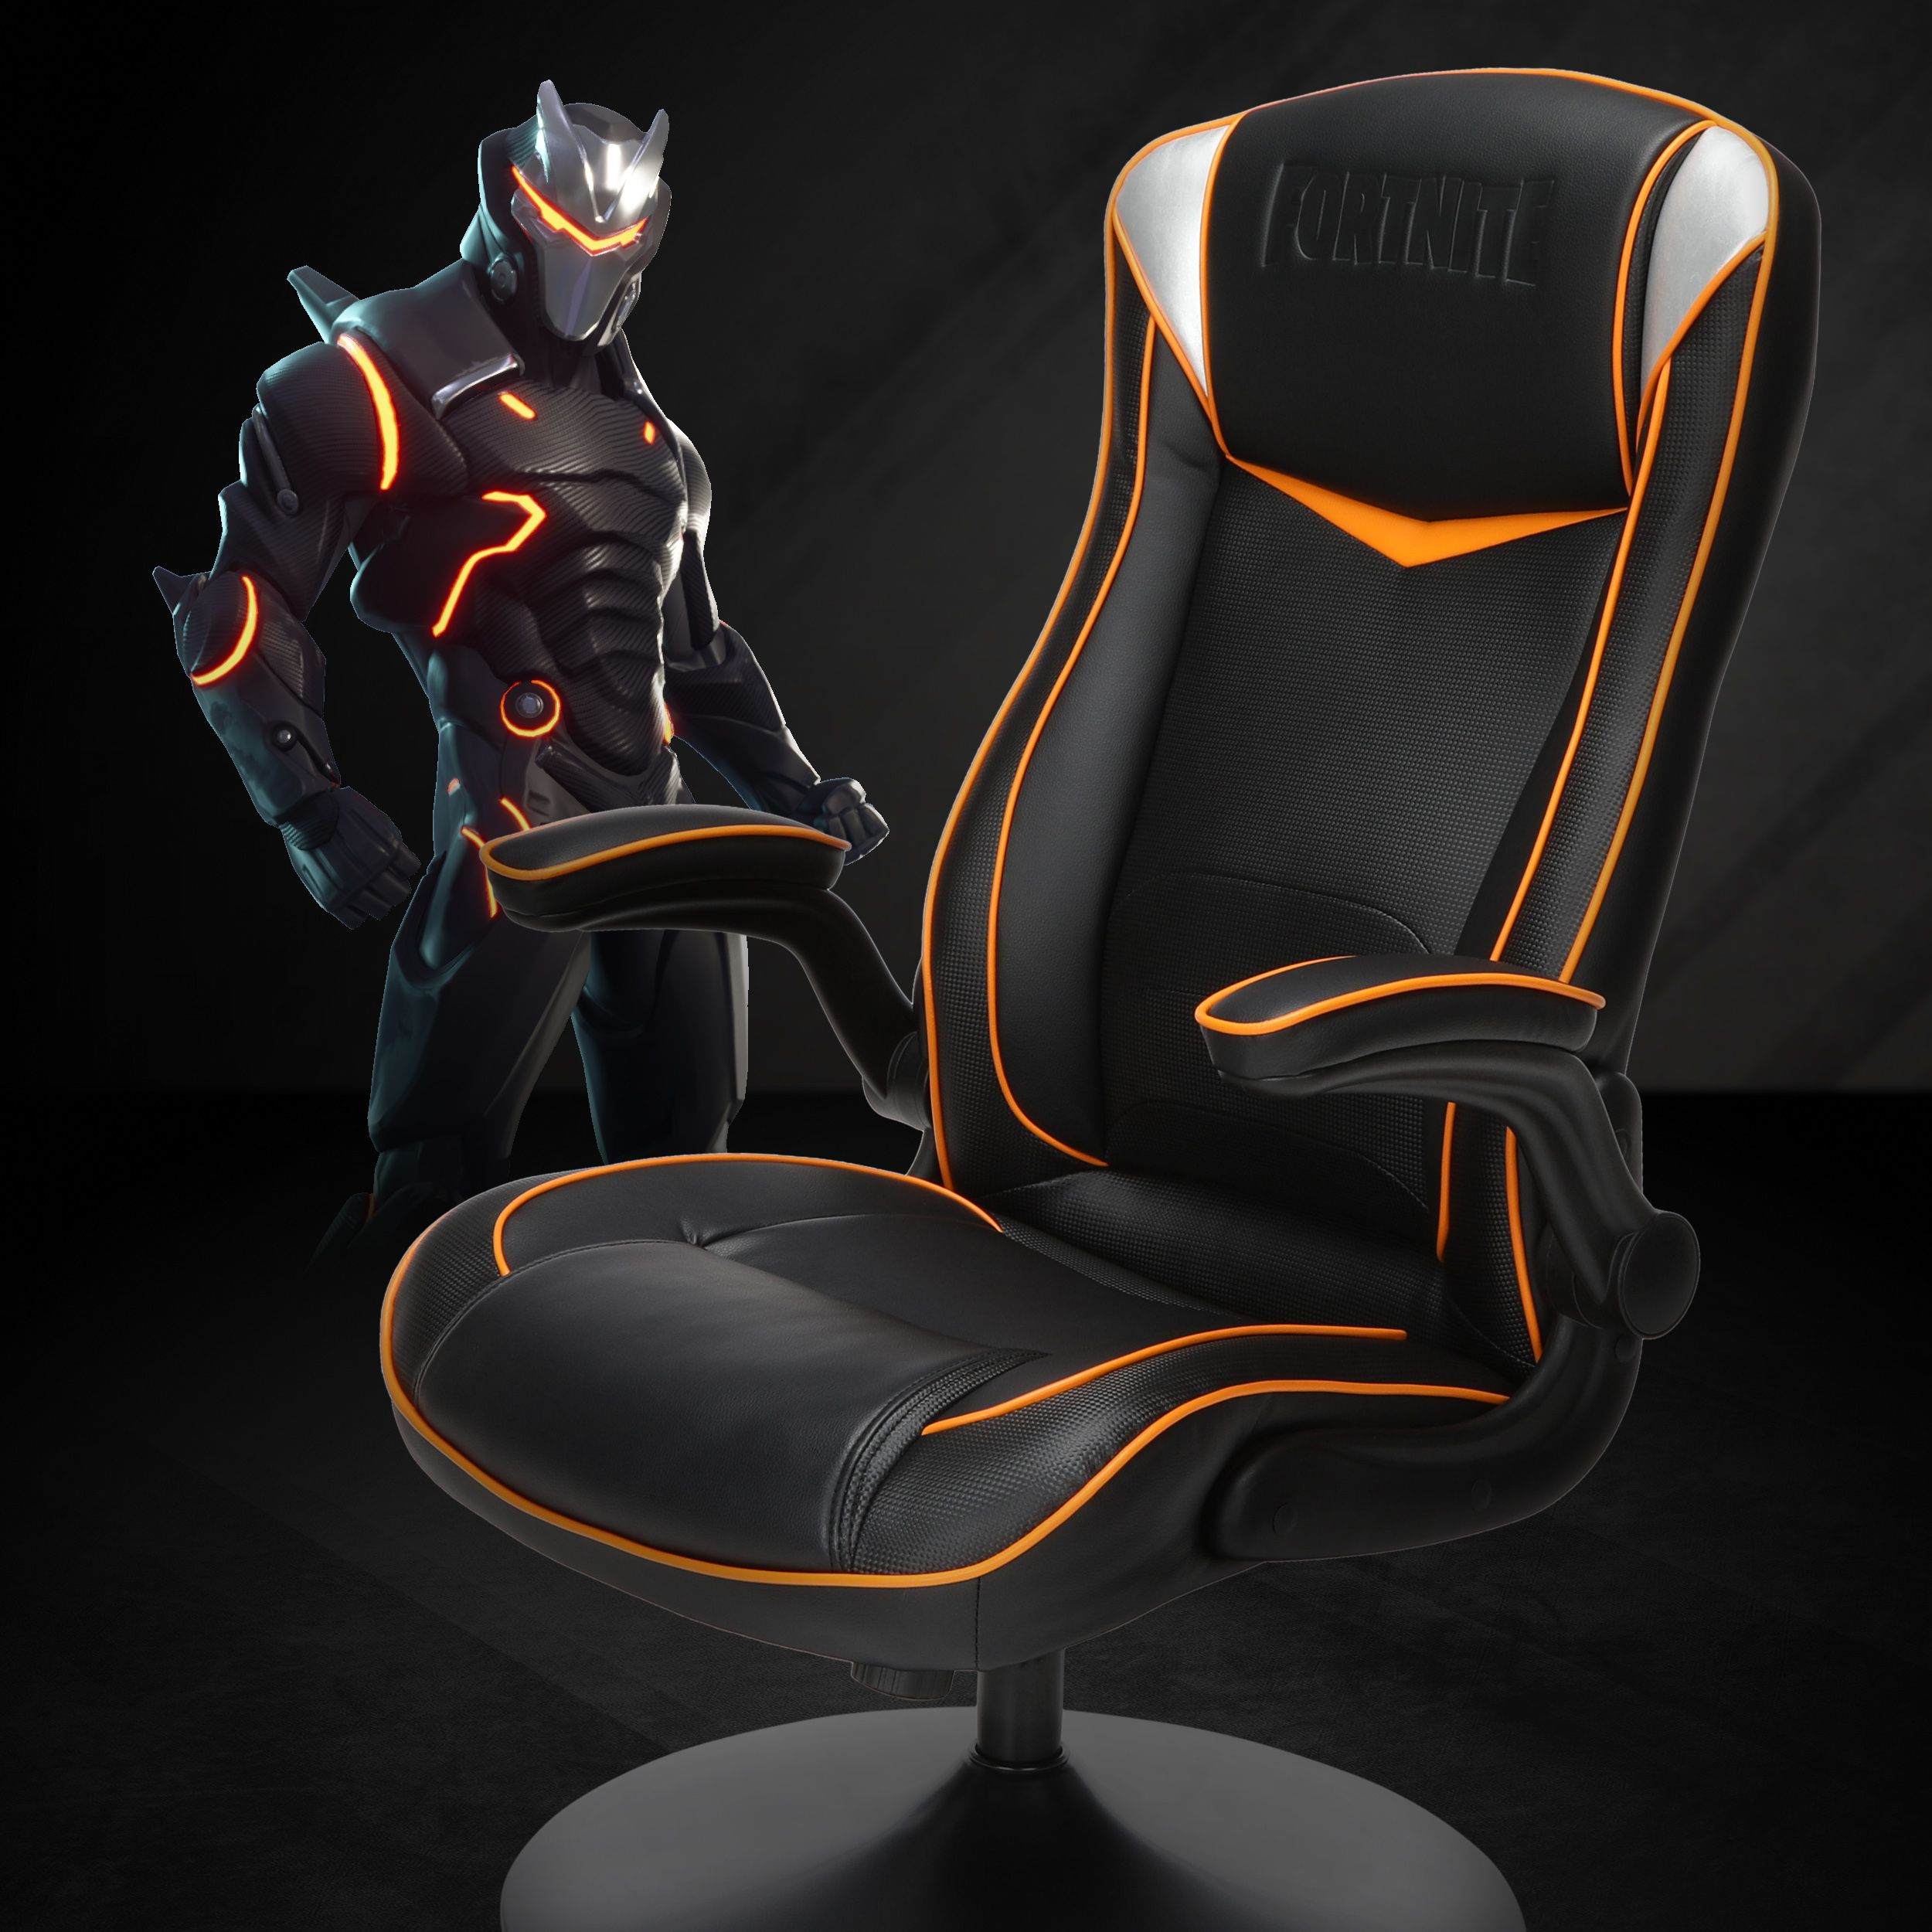 Fortnite OMEGAR Gaming Rocker Chair, RESPAWN by OFM